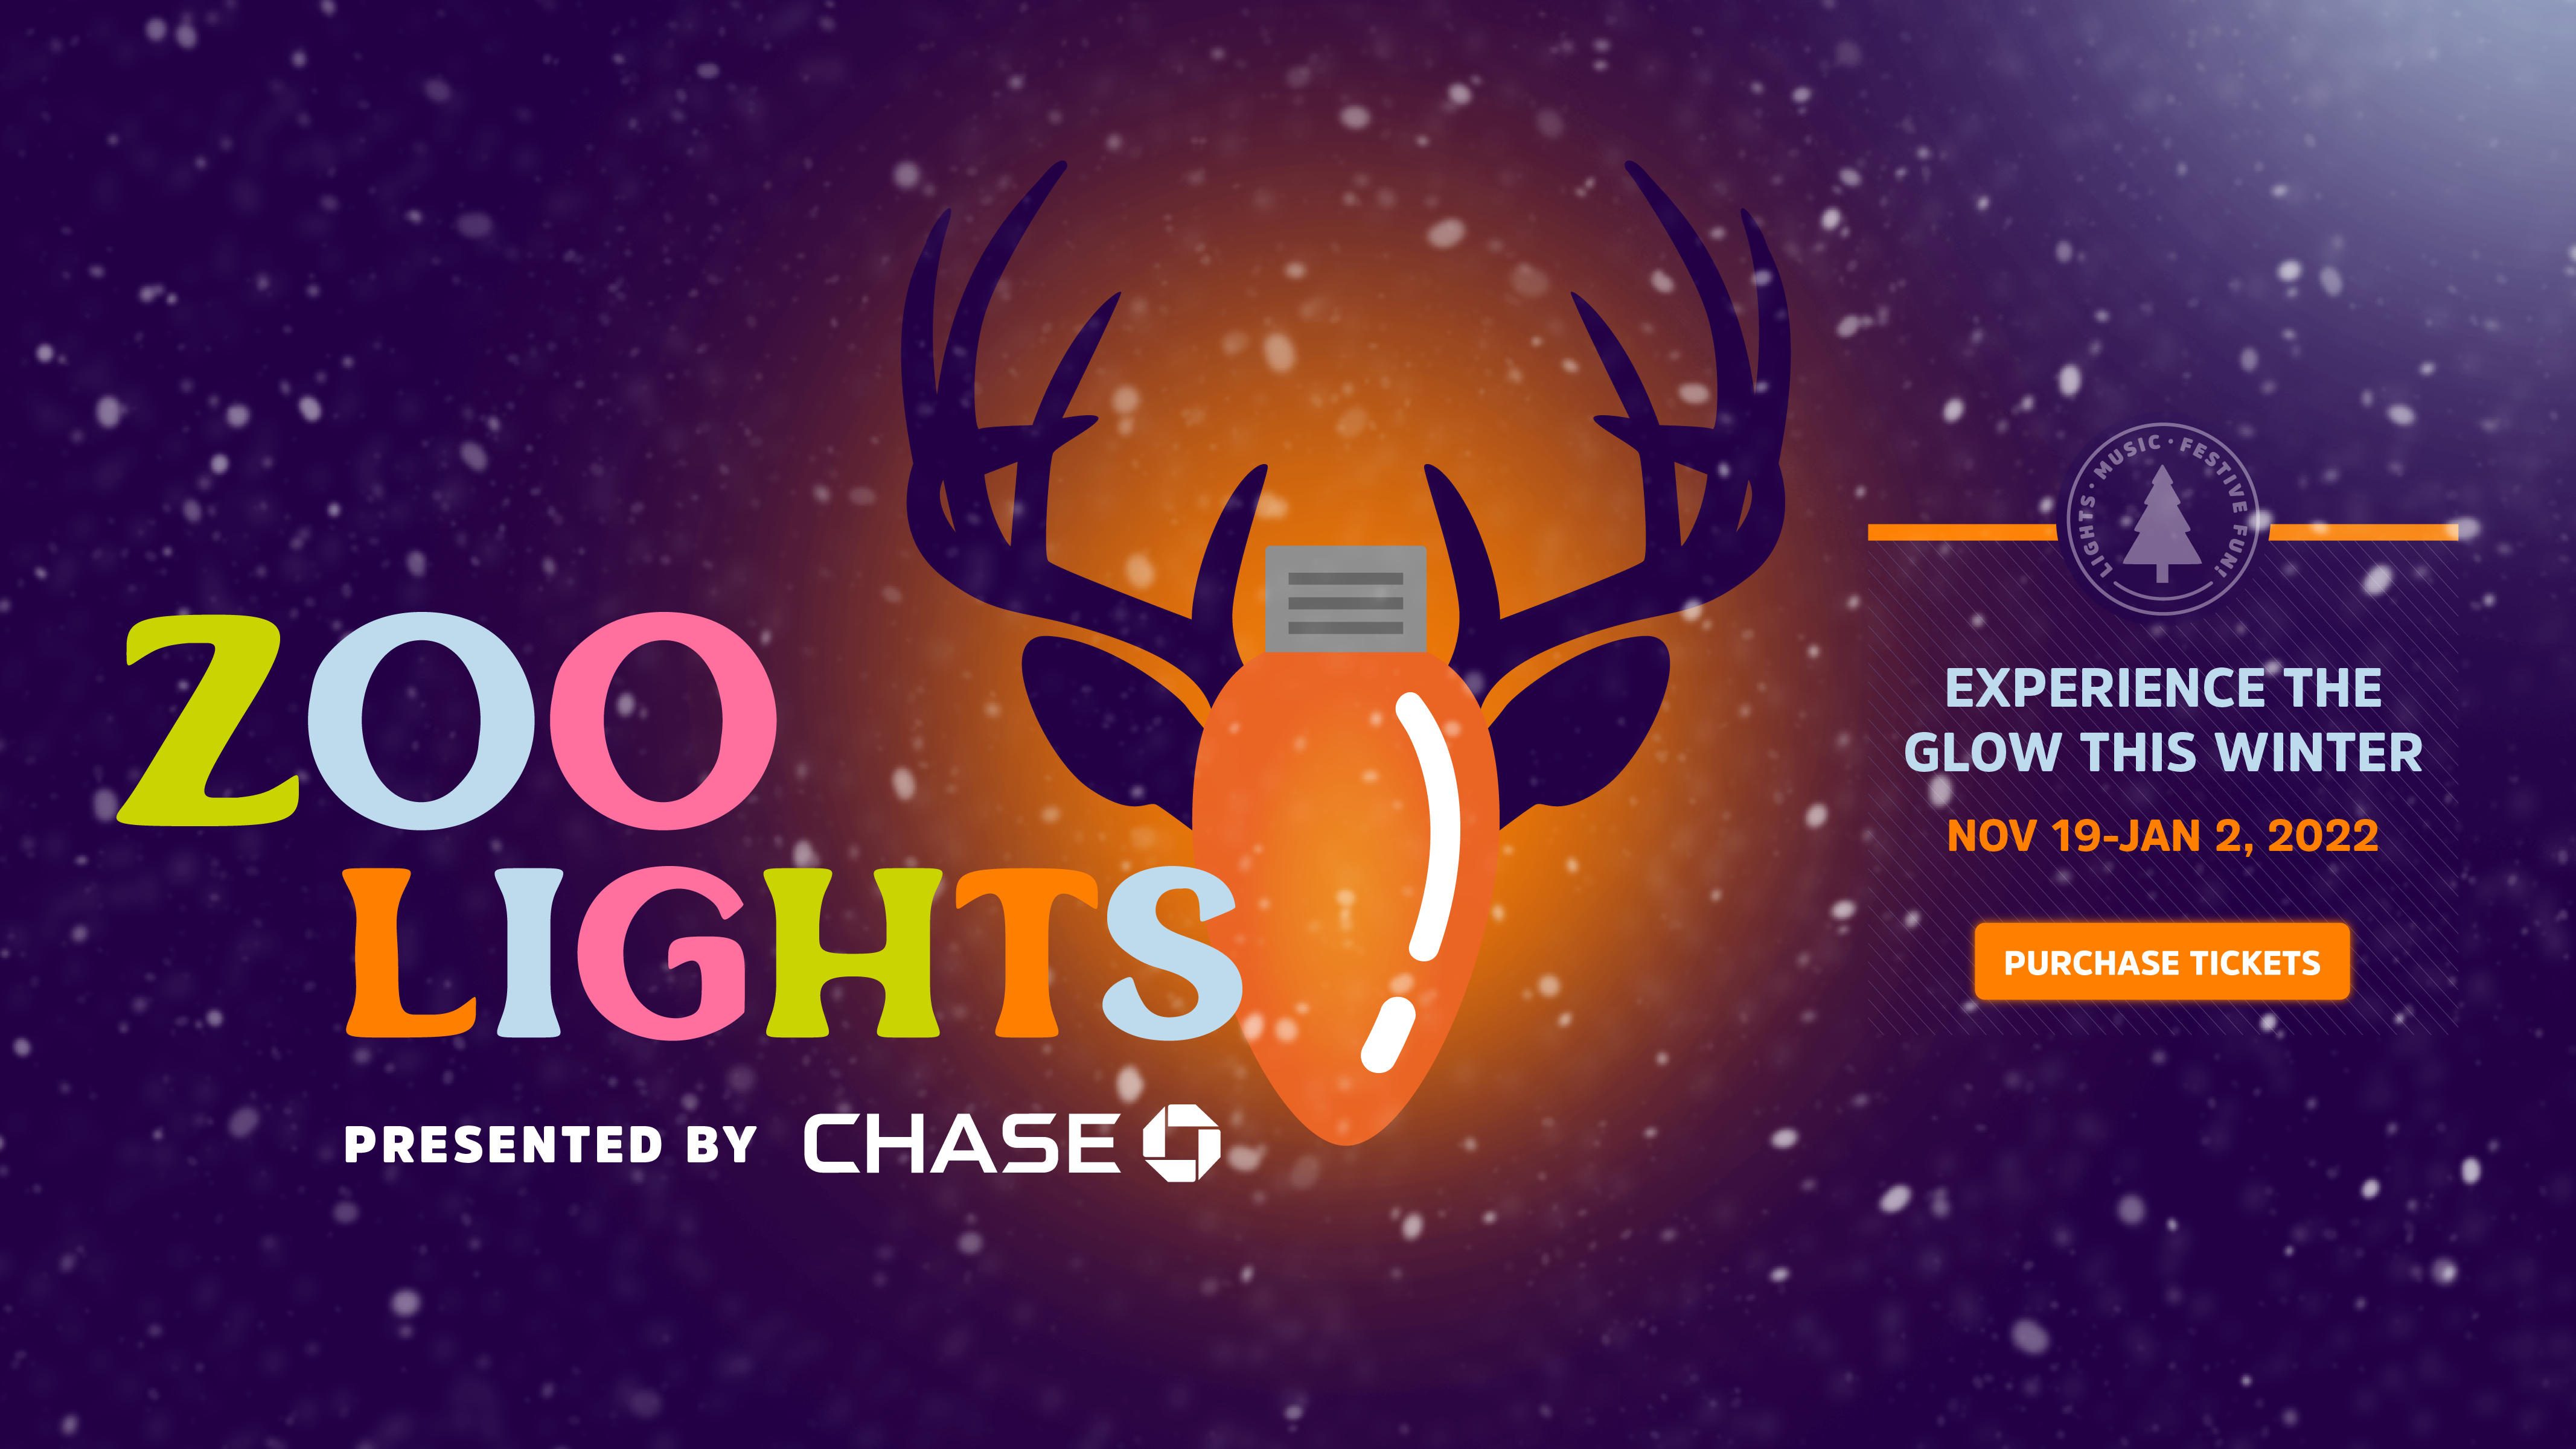 Zoo Lights presented by Chase